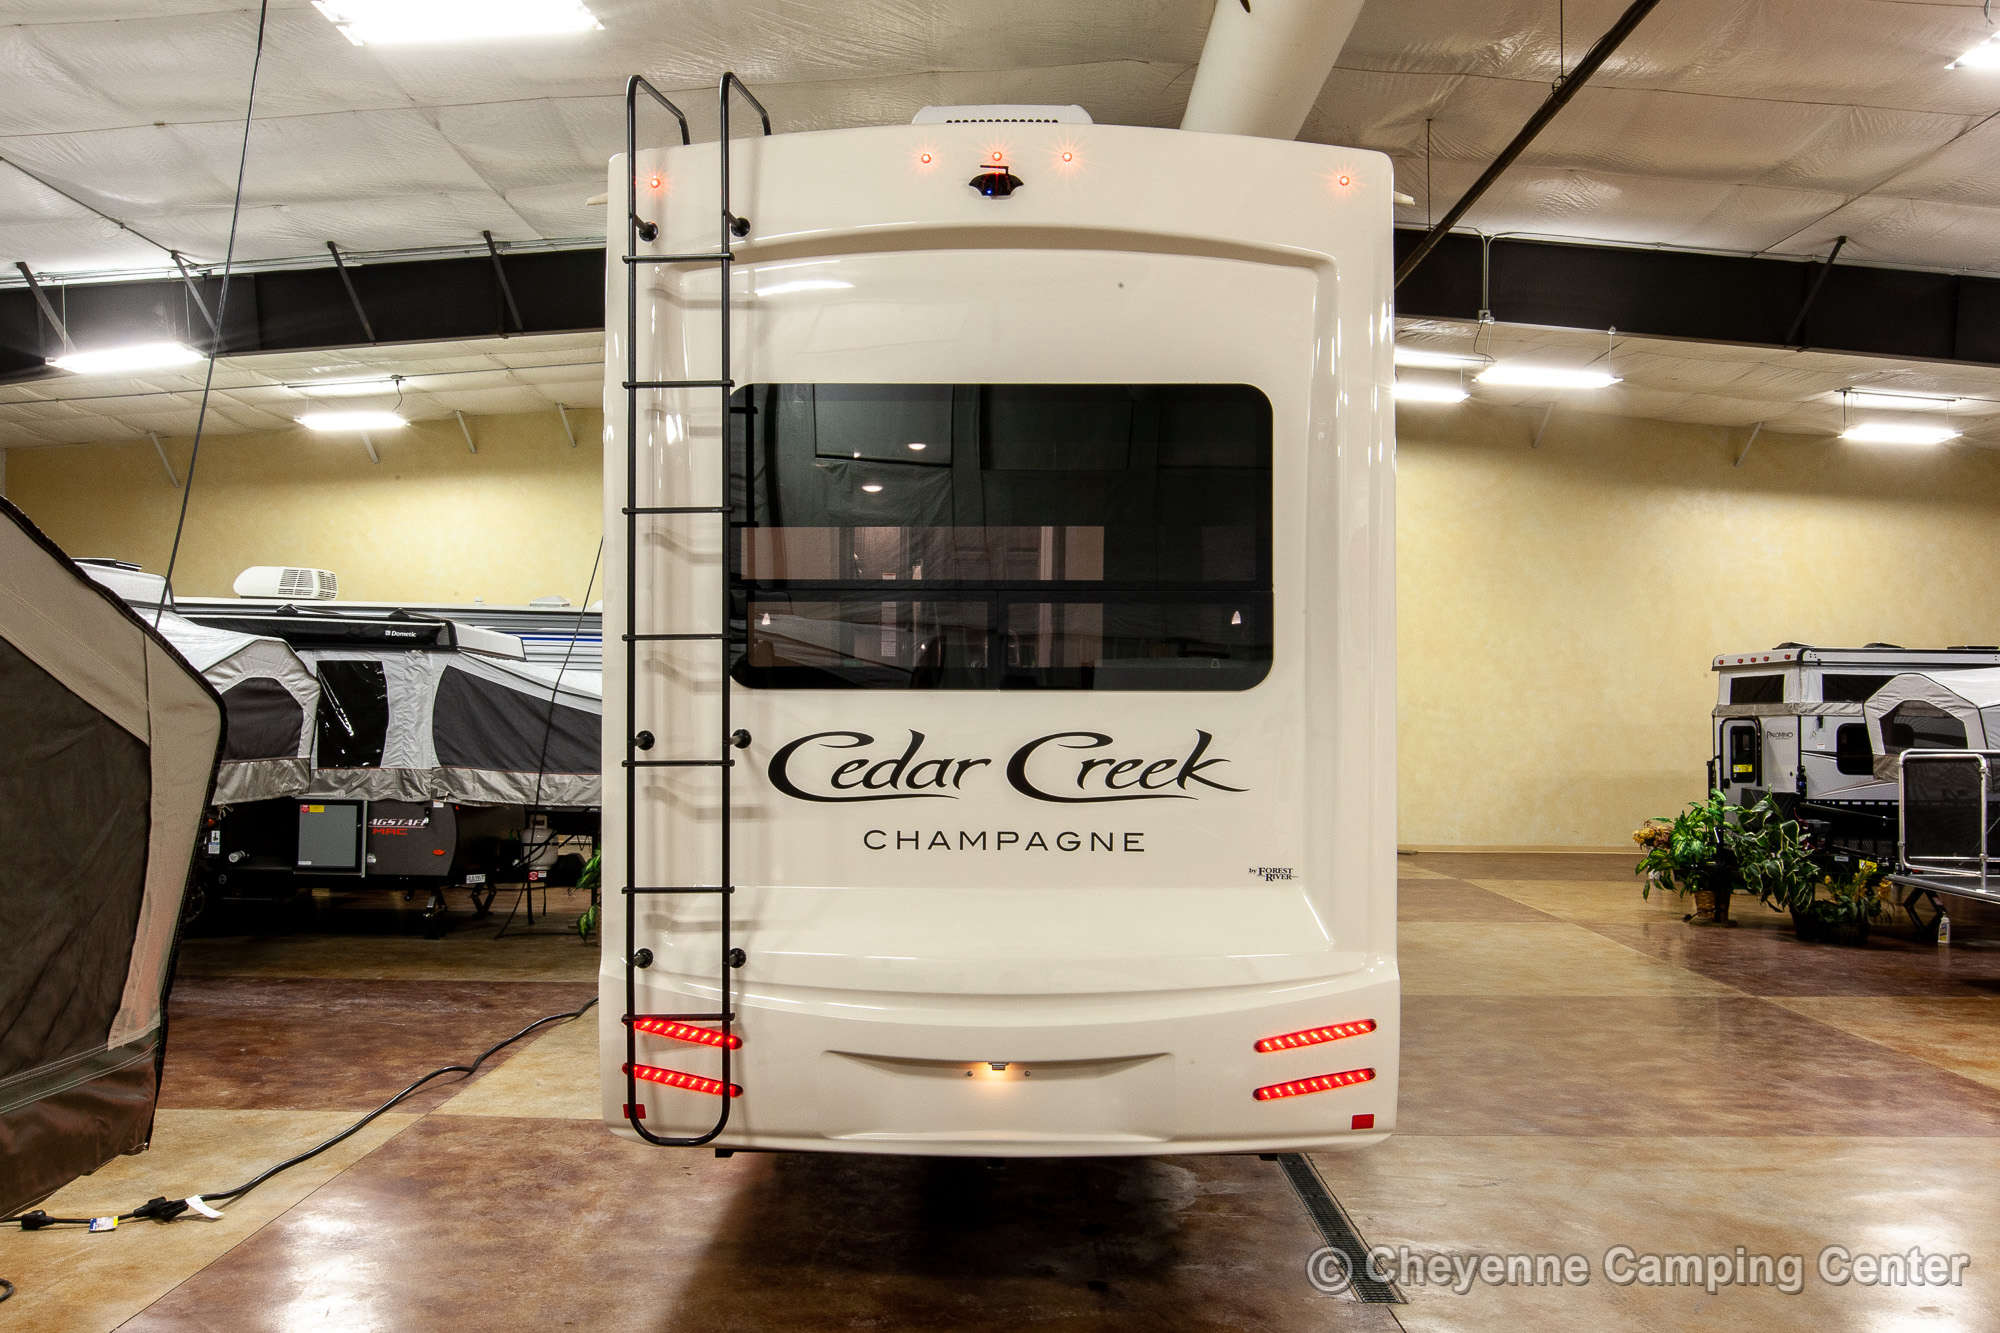 2020 Forest River Cedar Creek Champagne Edition 38EL Fifth Wheel Exterior Image